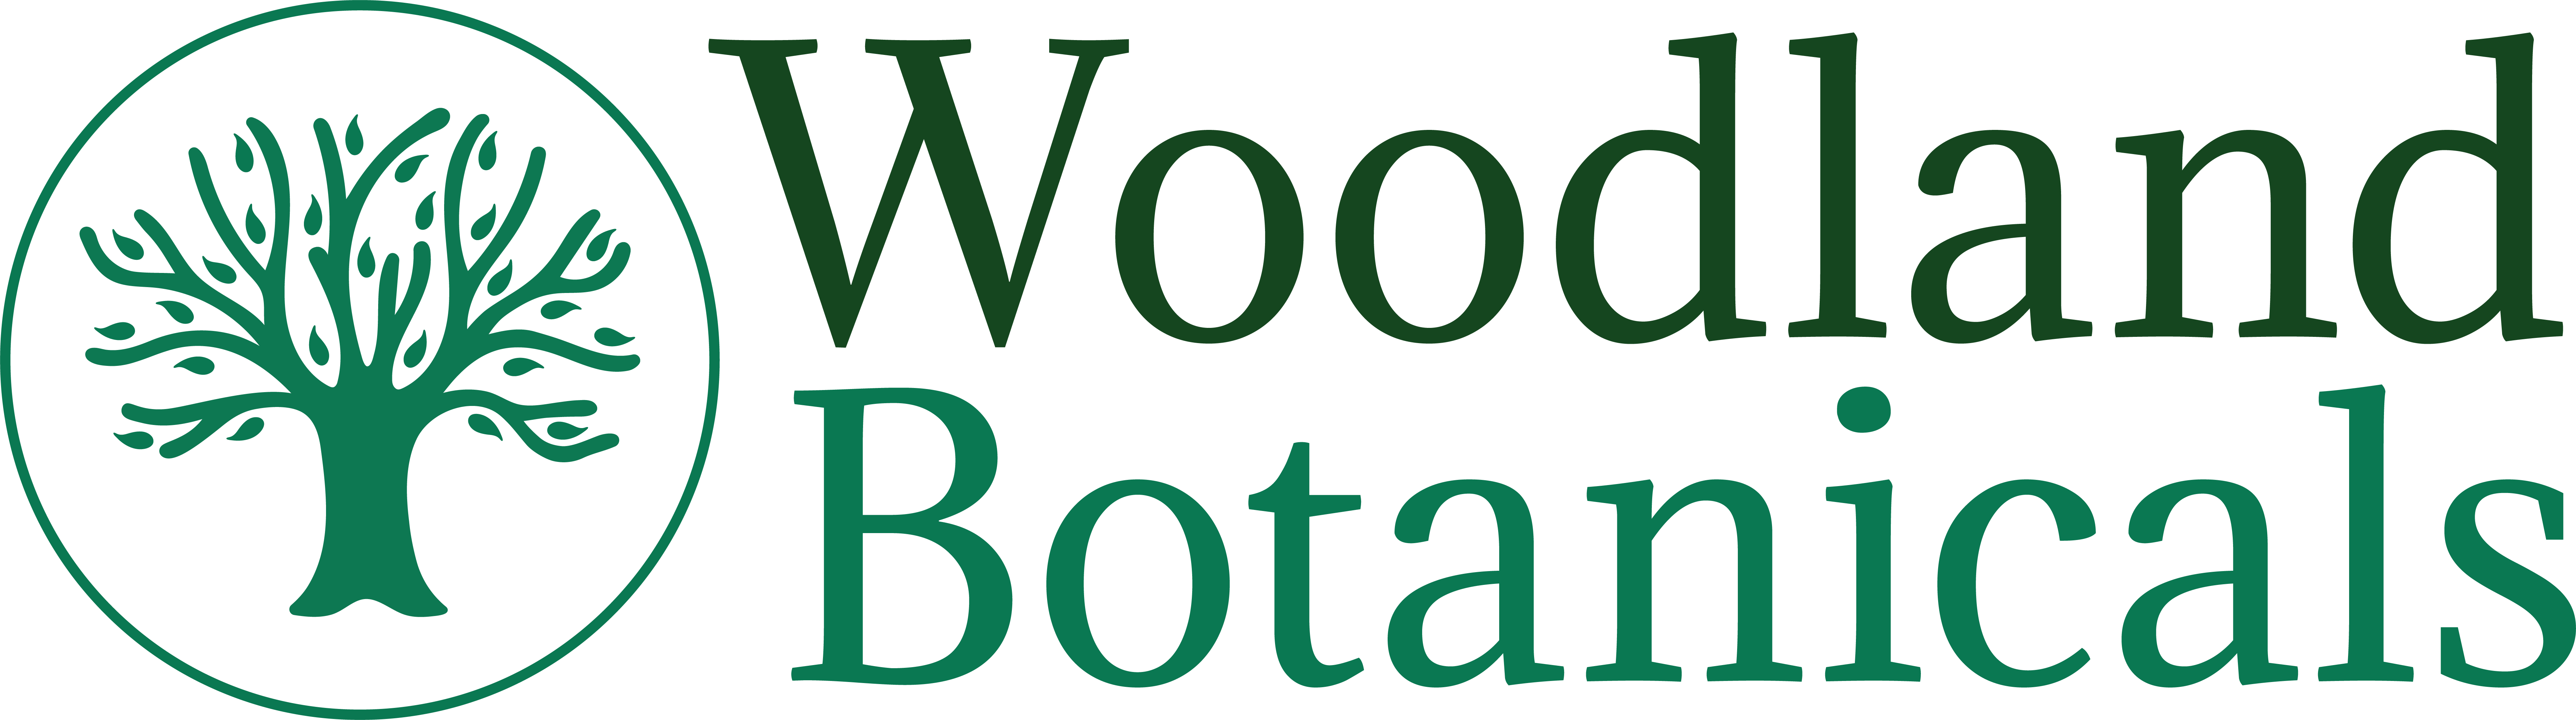 Woodland Botanicals